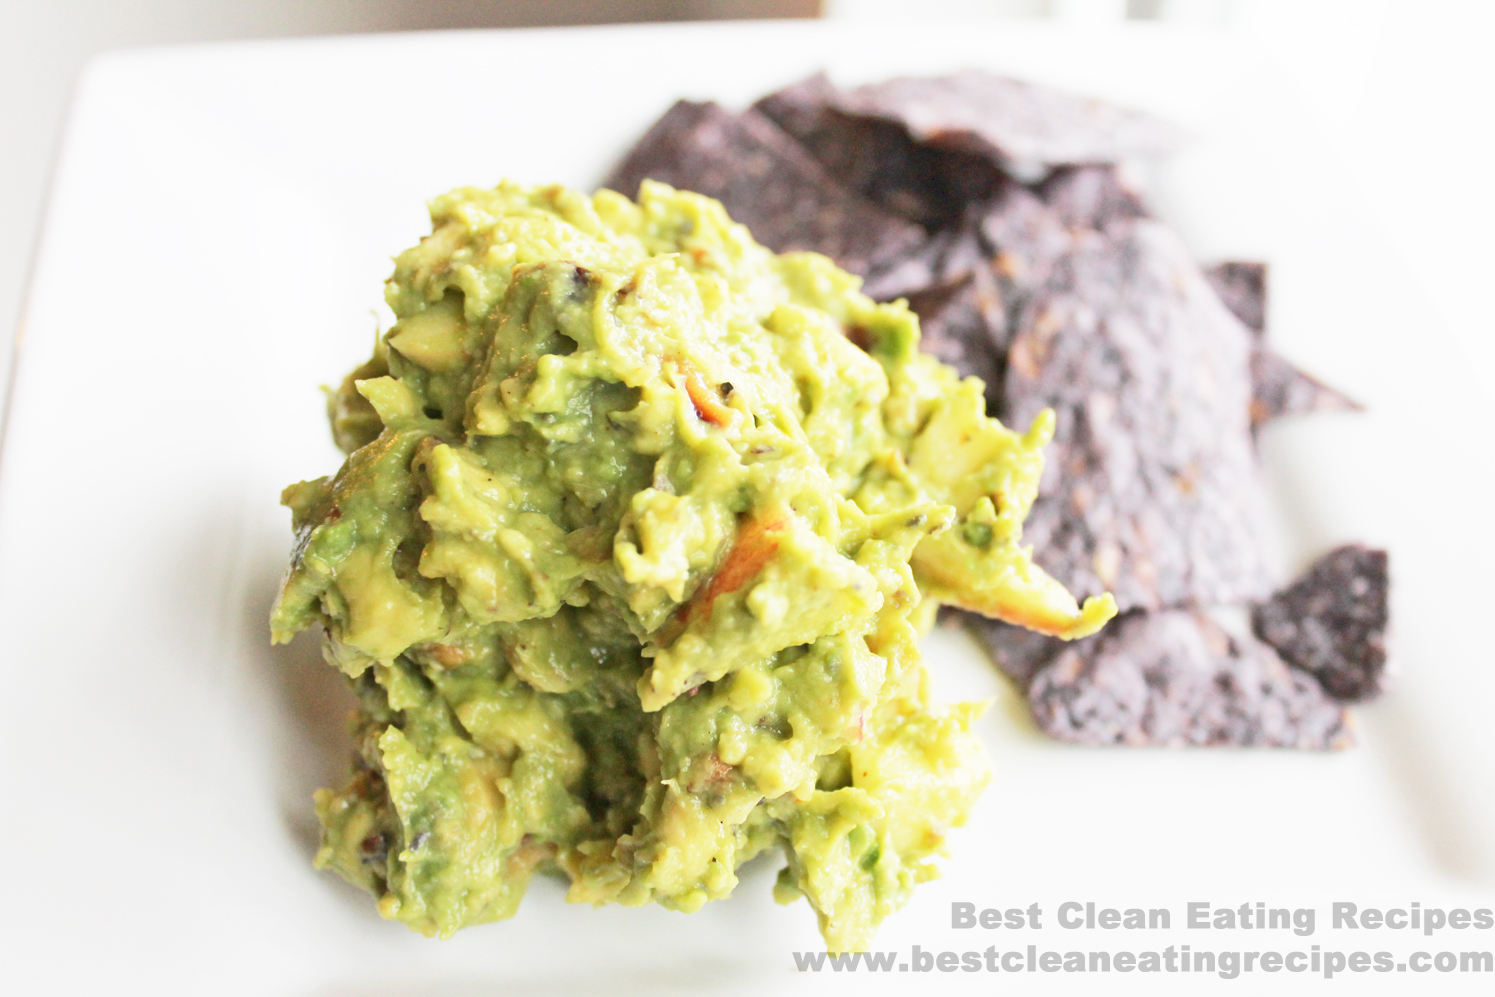 Clean Eating Recipe – Apple Walnut Guacamole